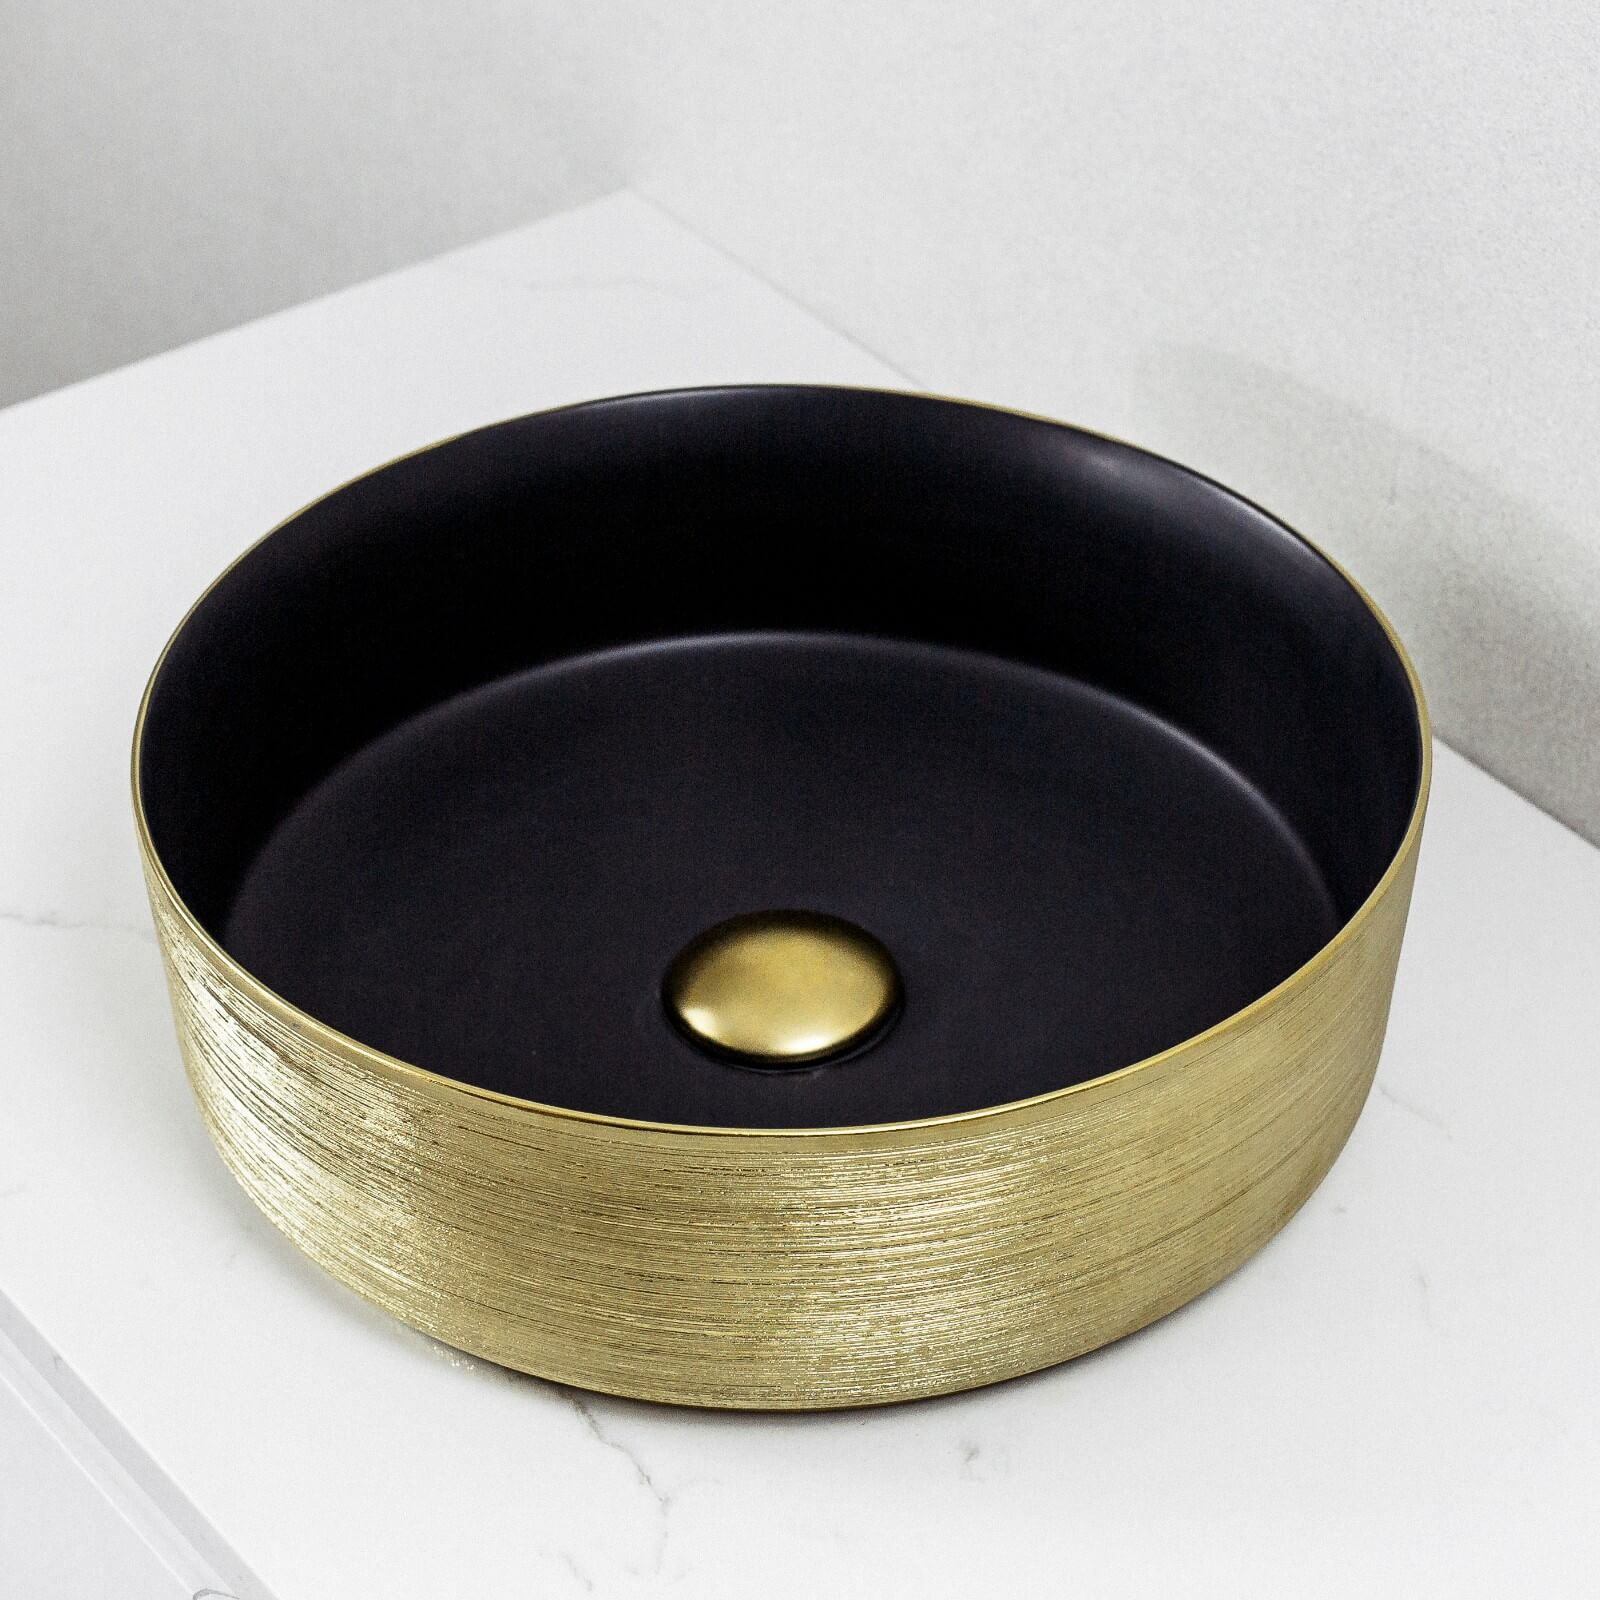 Aura Above Counter Basin Matte Black and Gold Brushed